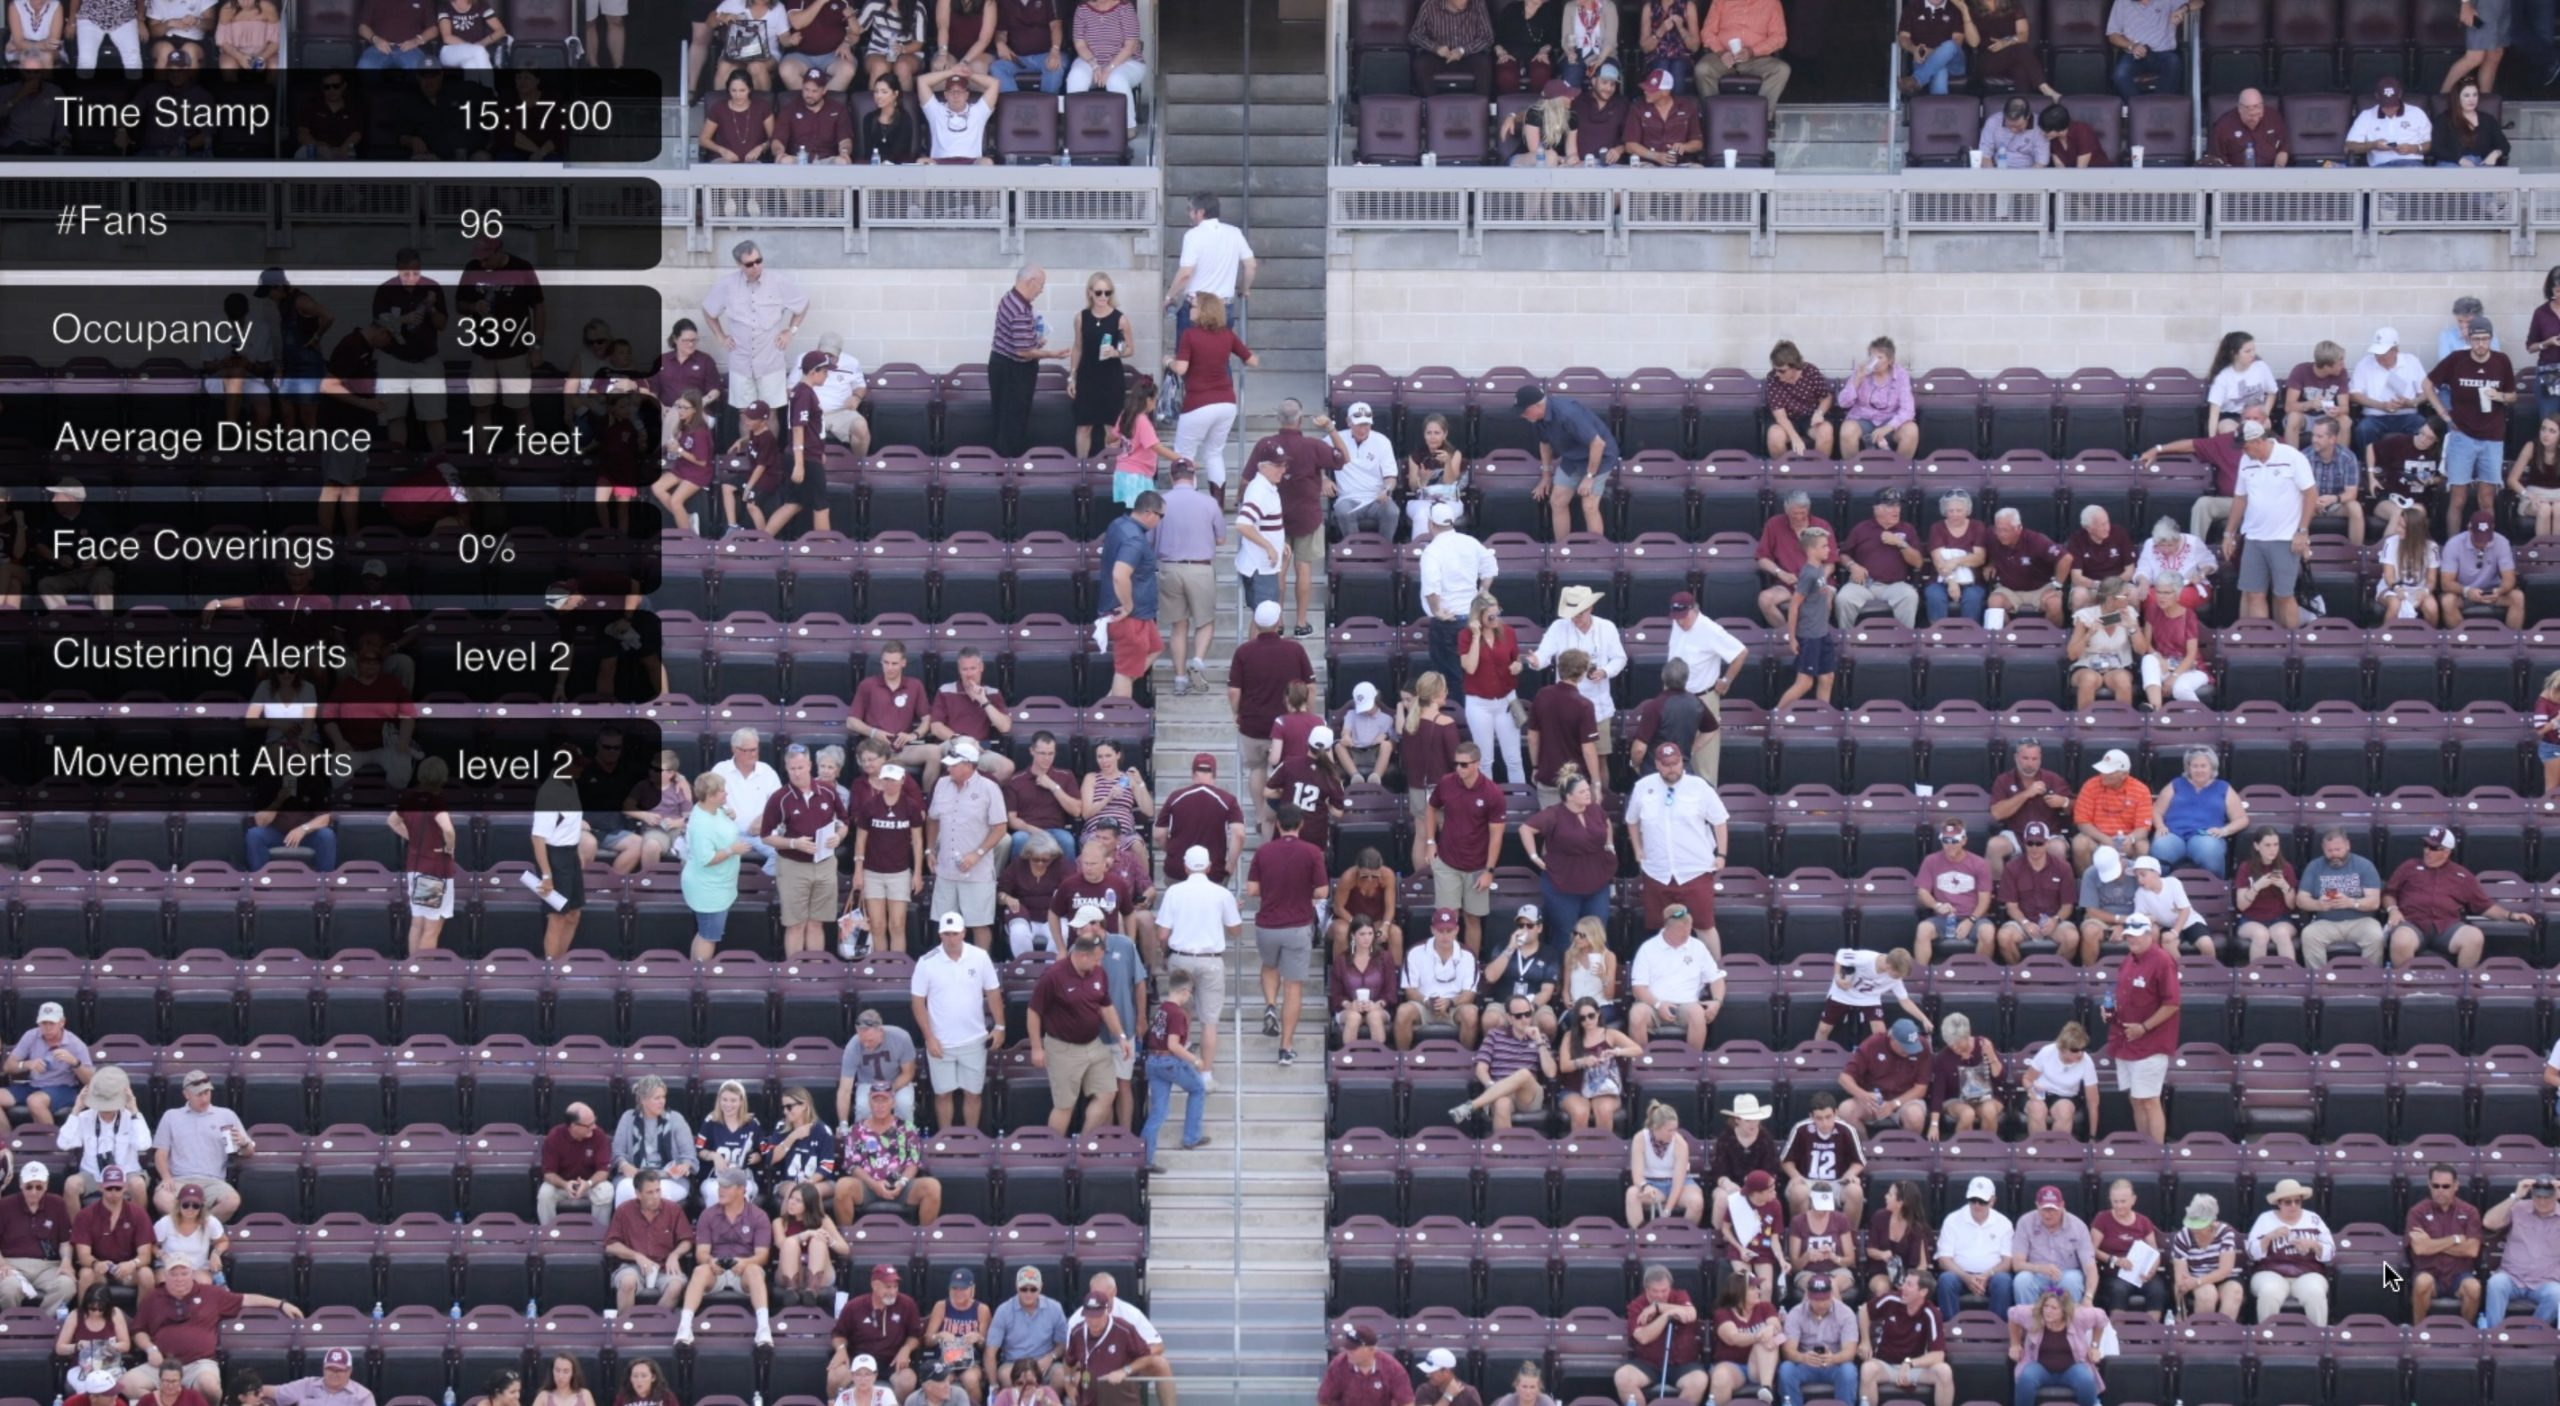 Using computer vision to deliver social distancing metrics in the stands.